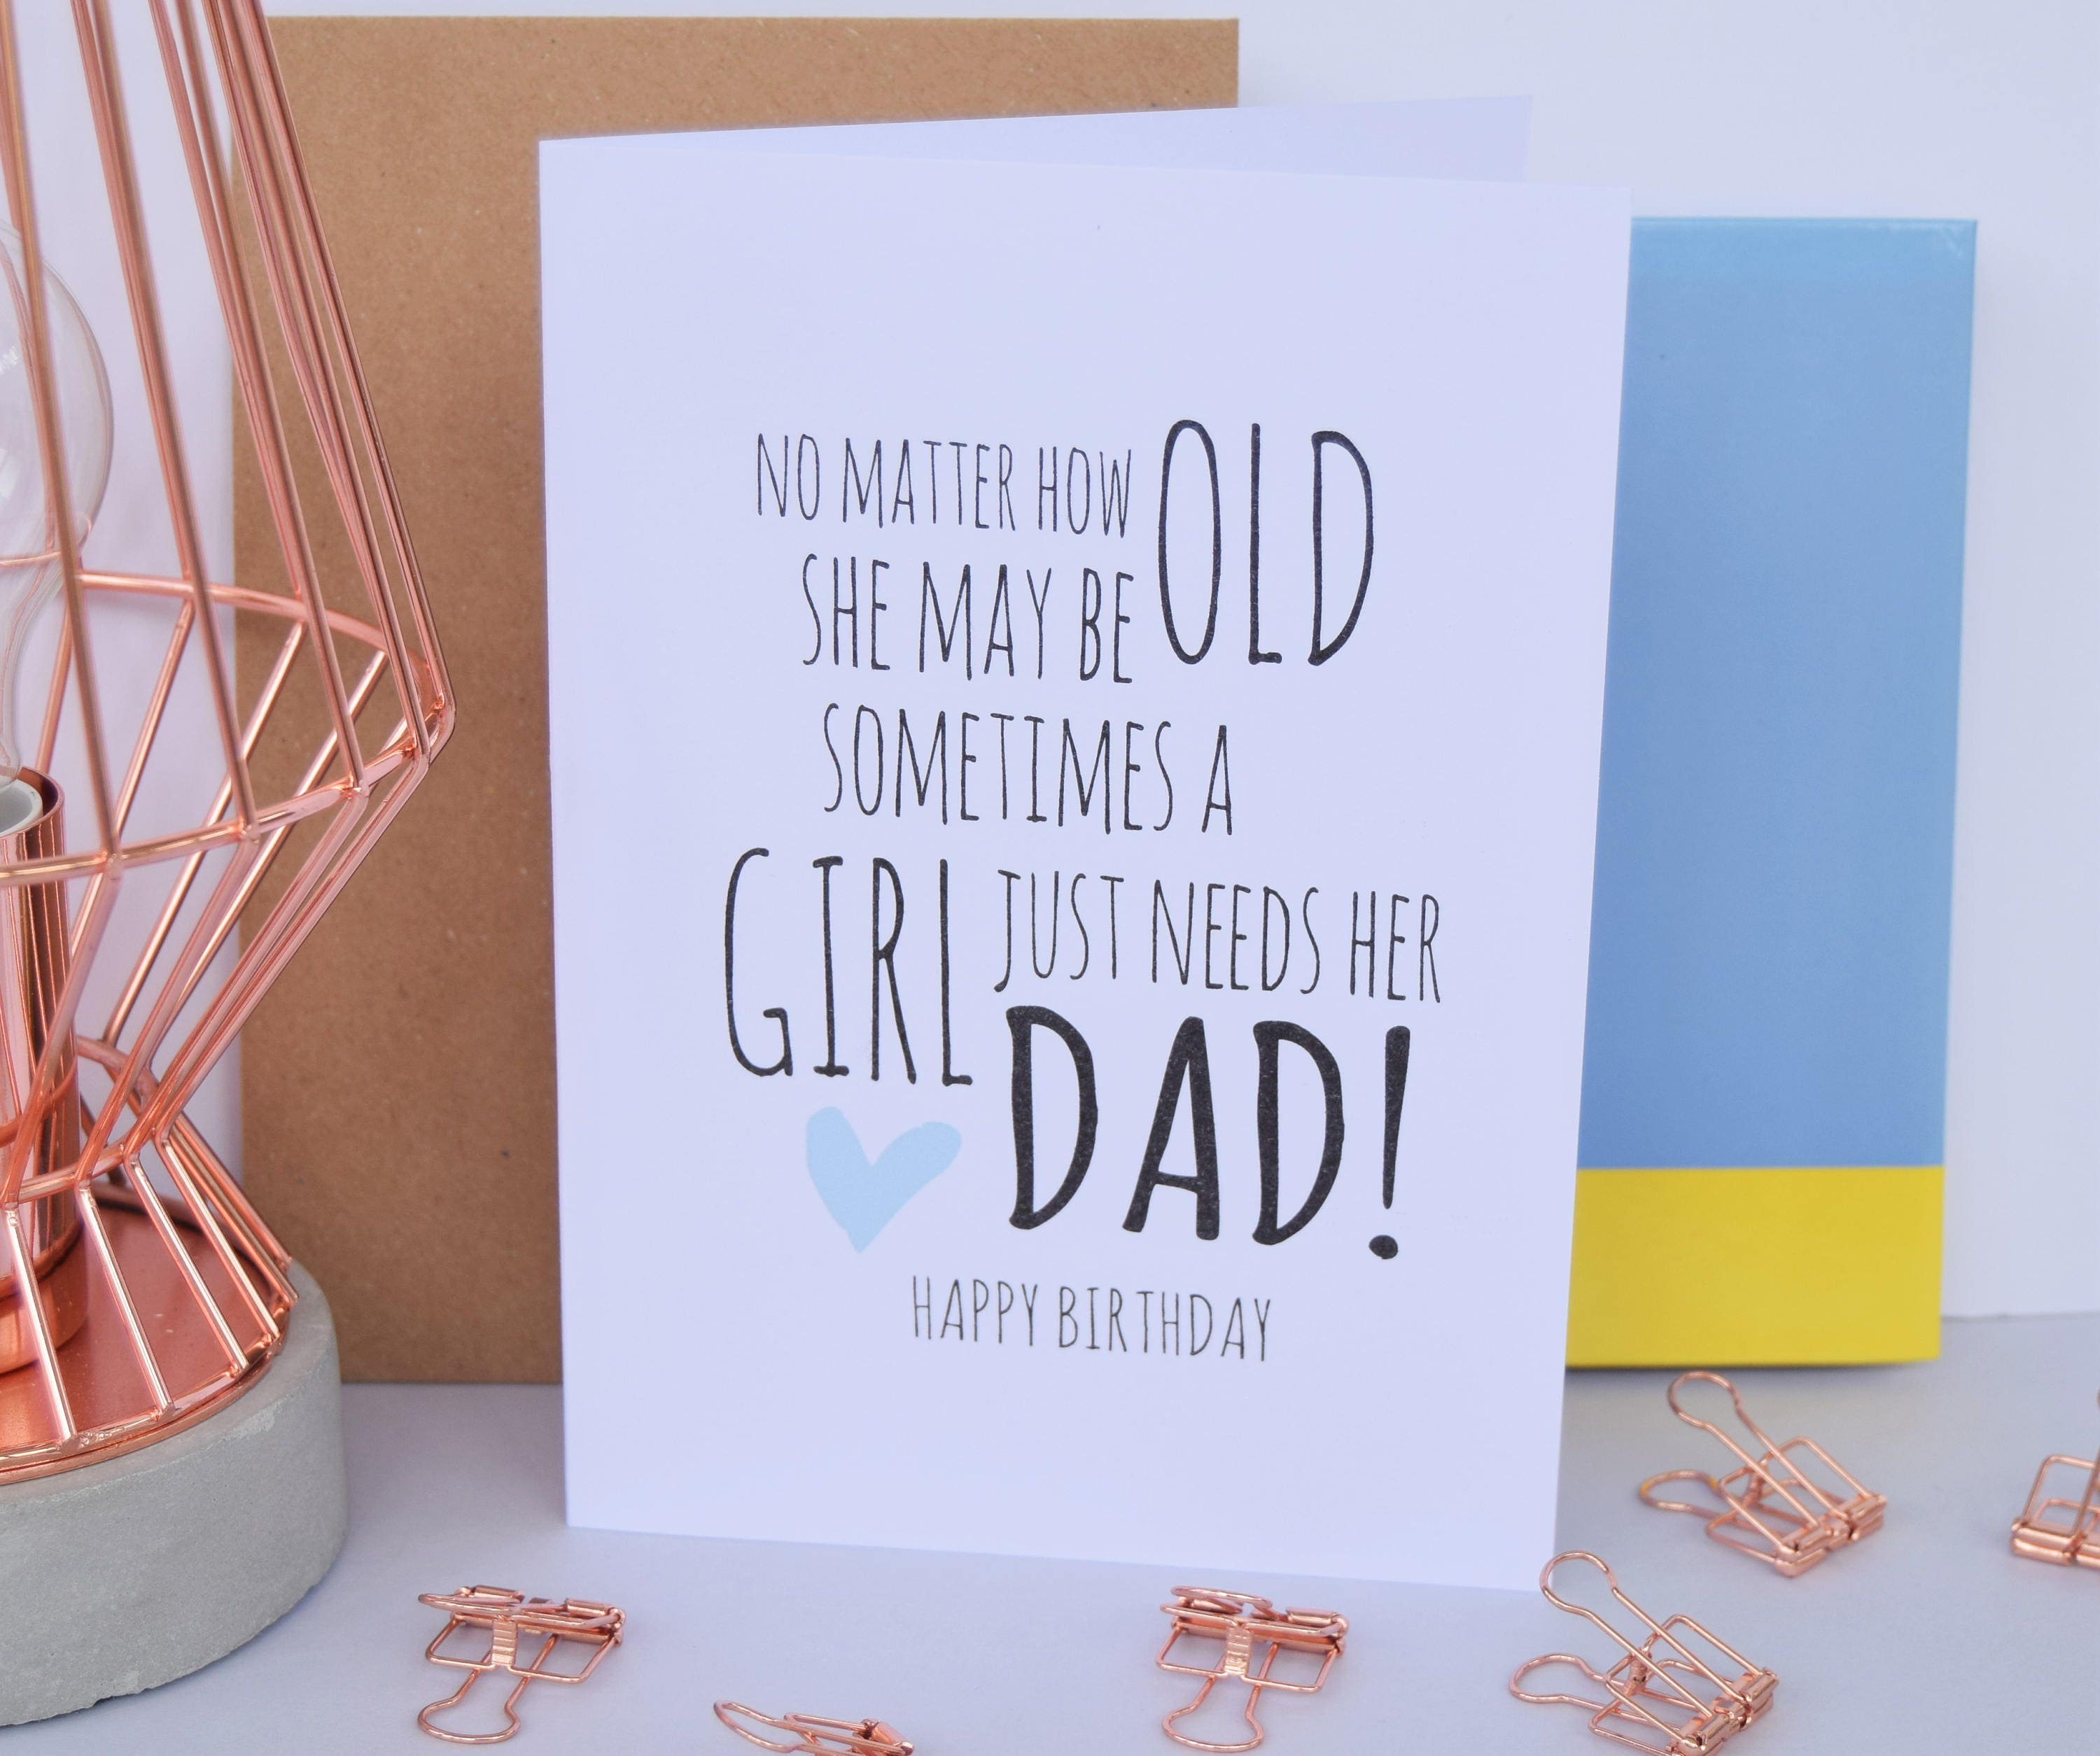 Dad Birthday Card A Girl Just Needs Her Dad Daughter Dad